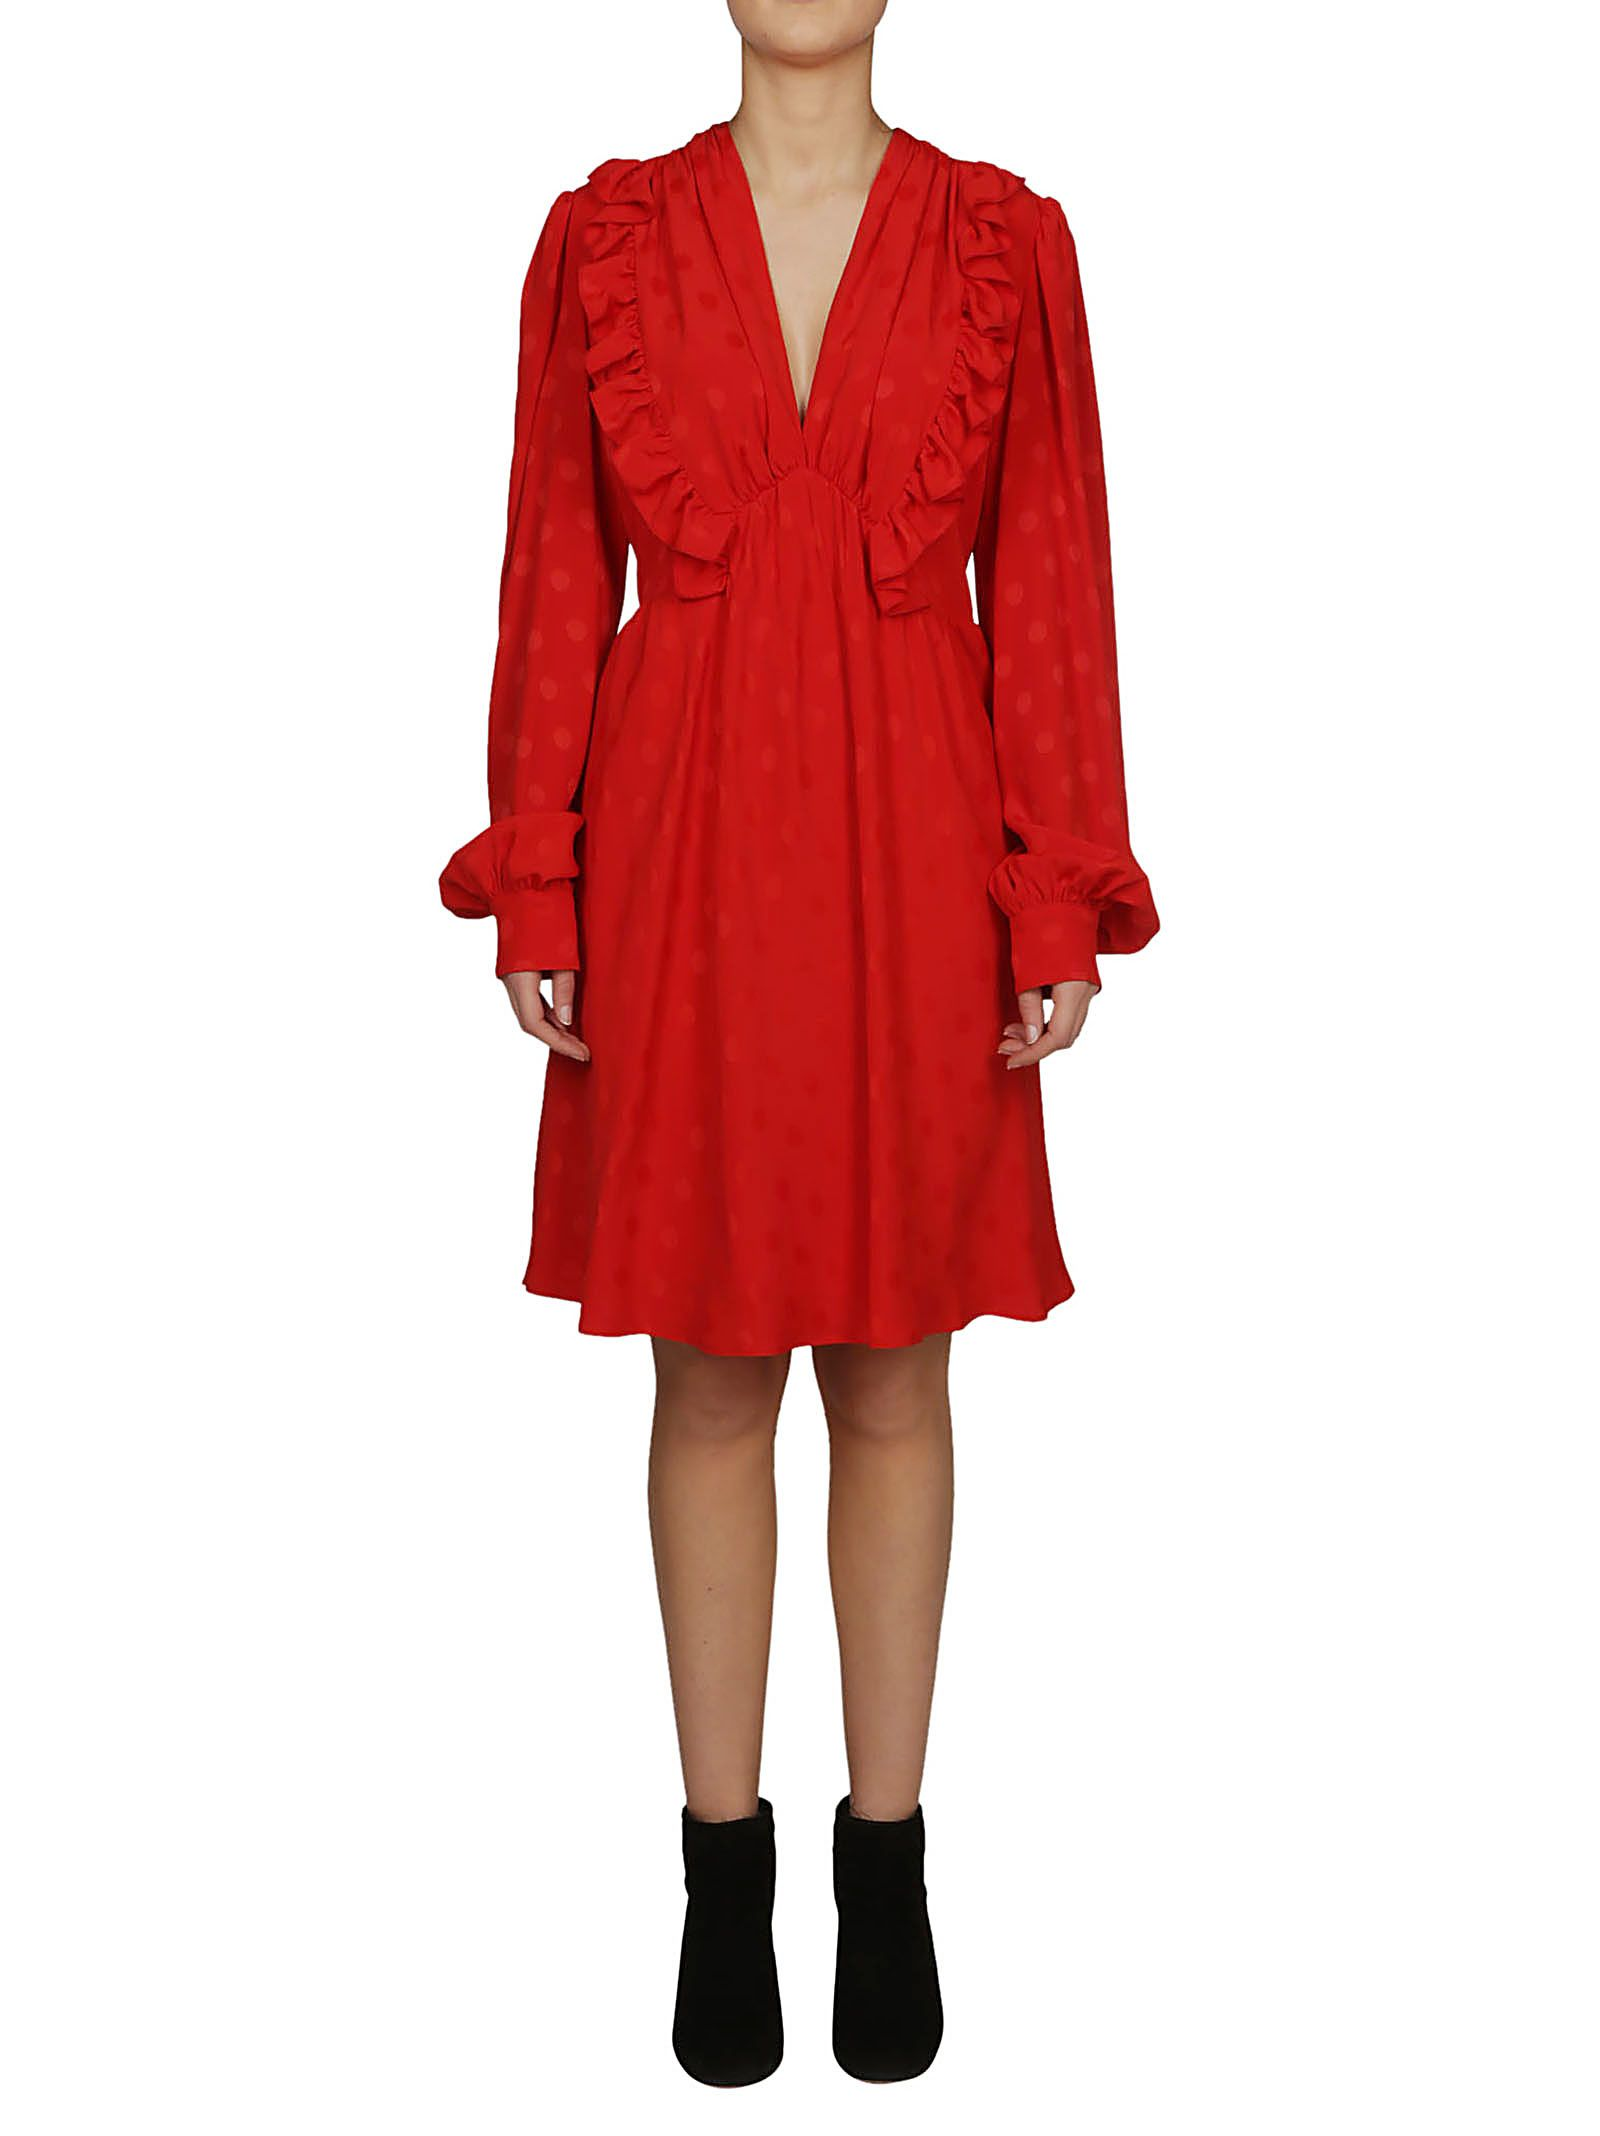 0f89771a297c MSGM Msgm Ruffled Detail V-neck Dress - Red - 10794530